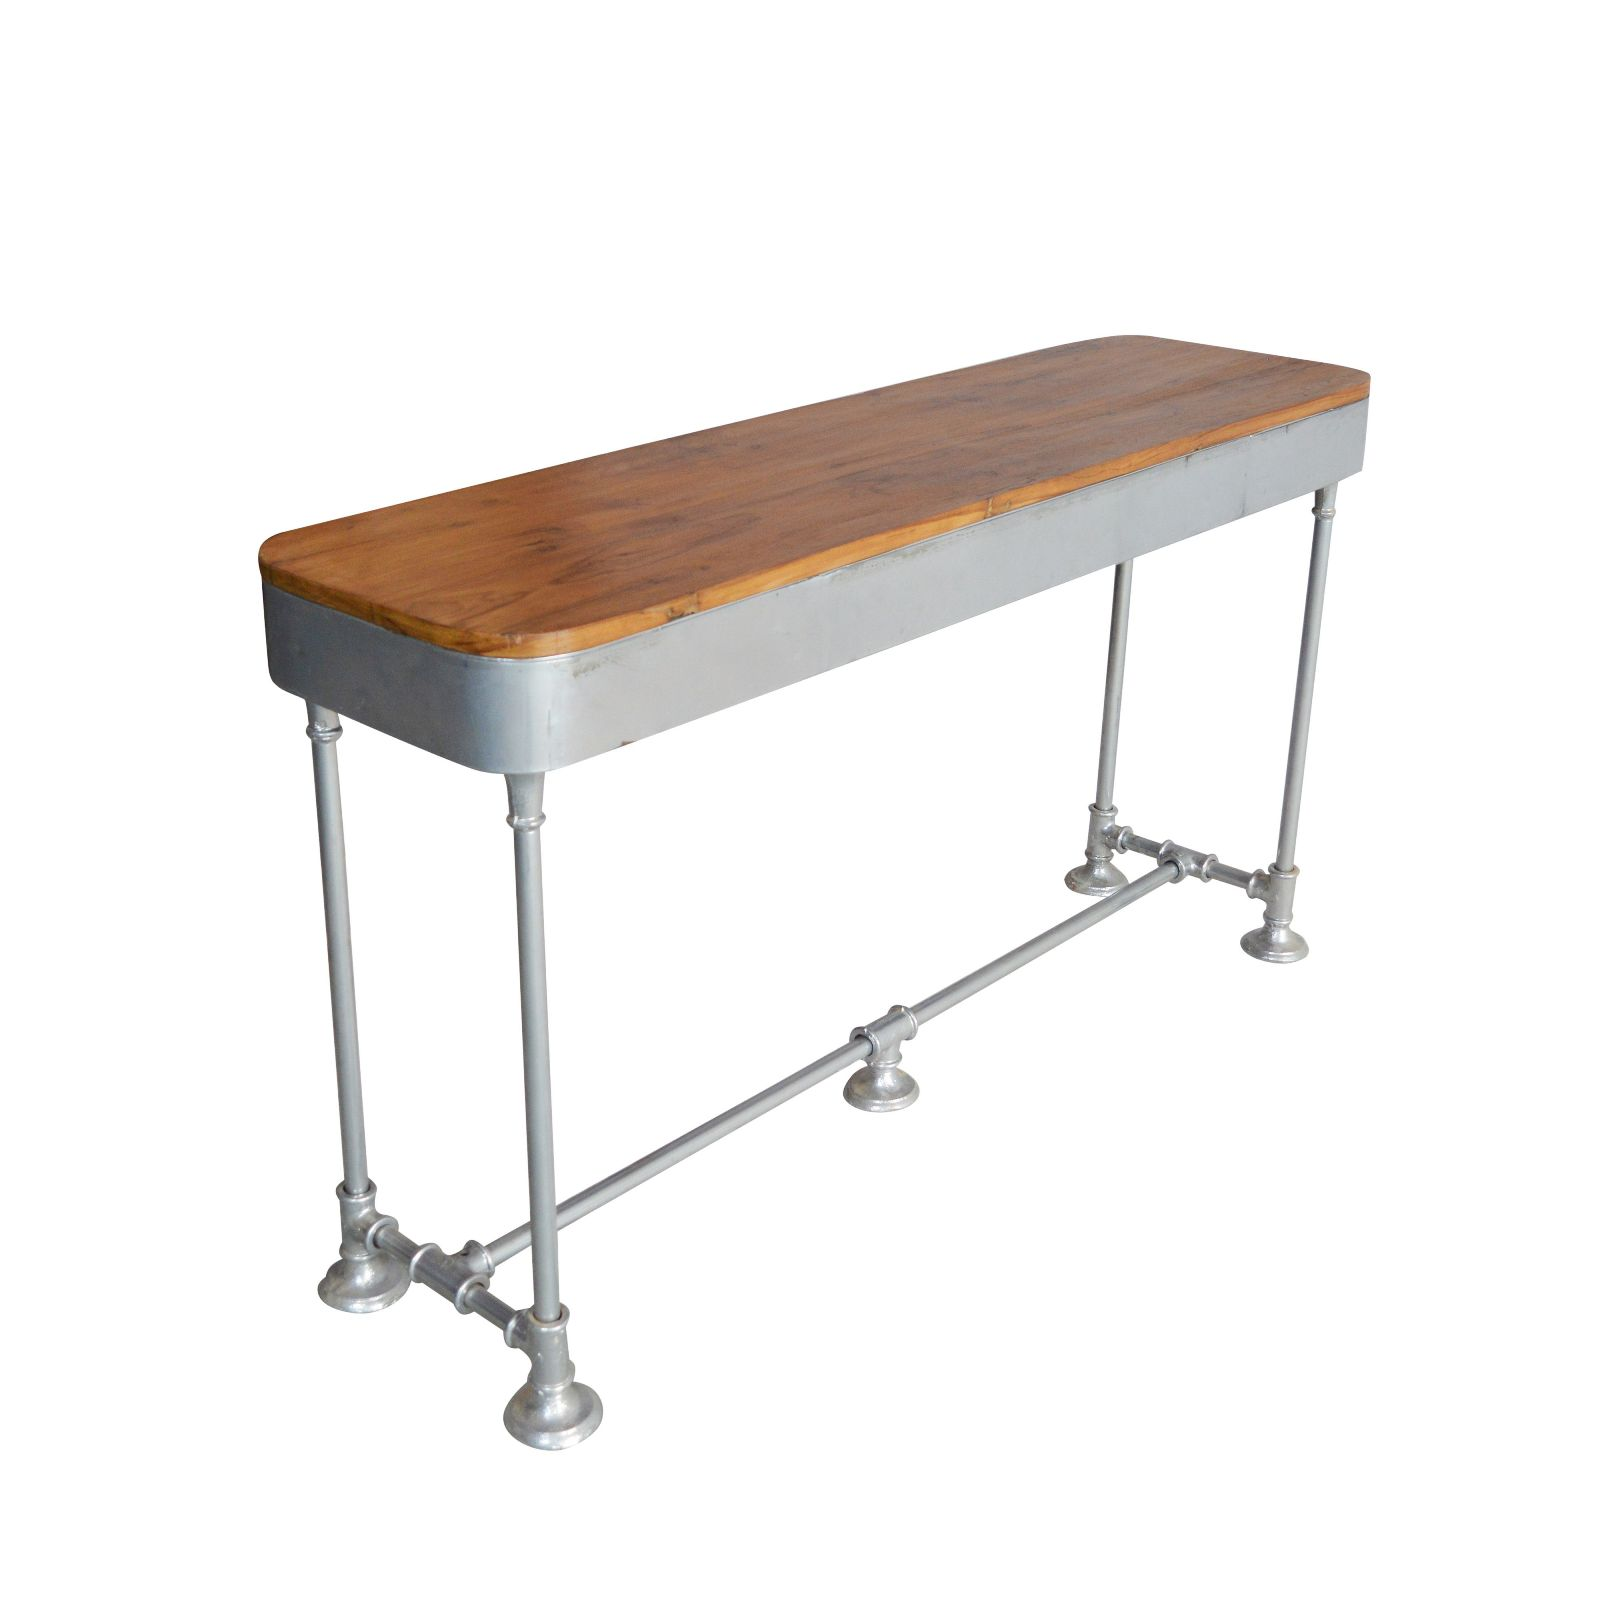 INDUSTRIAL CONSOLE TABLE TWO DRAWER TEAK TOP NATURAL FINISH RD IT